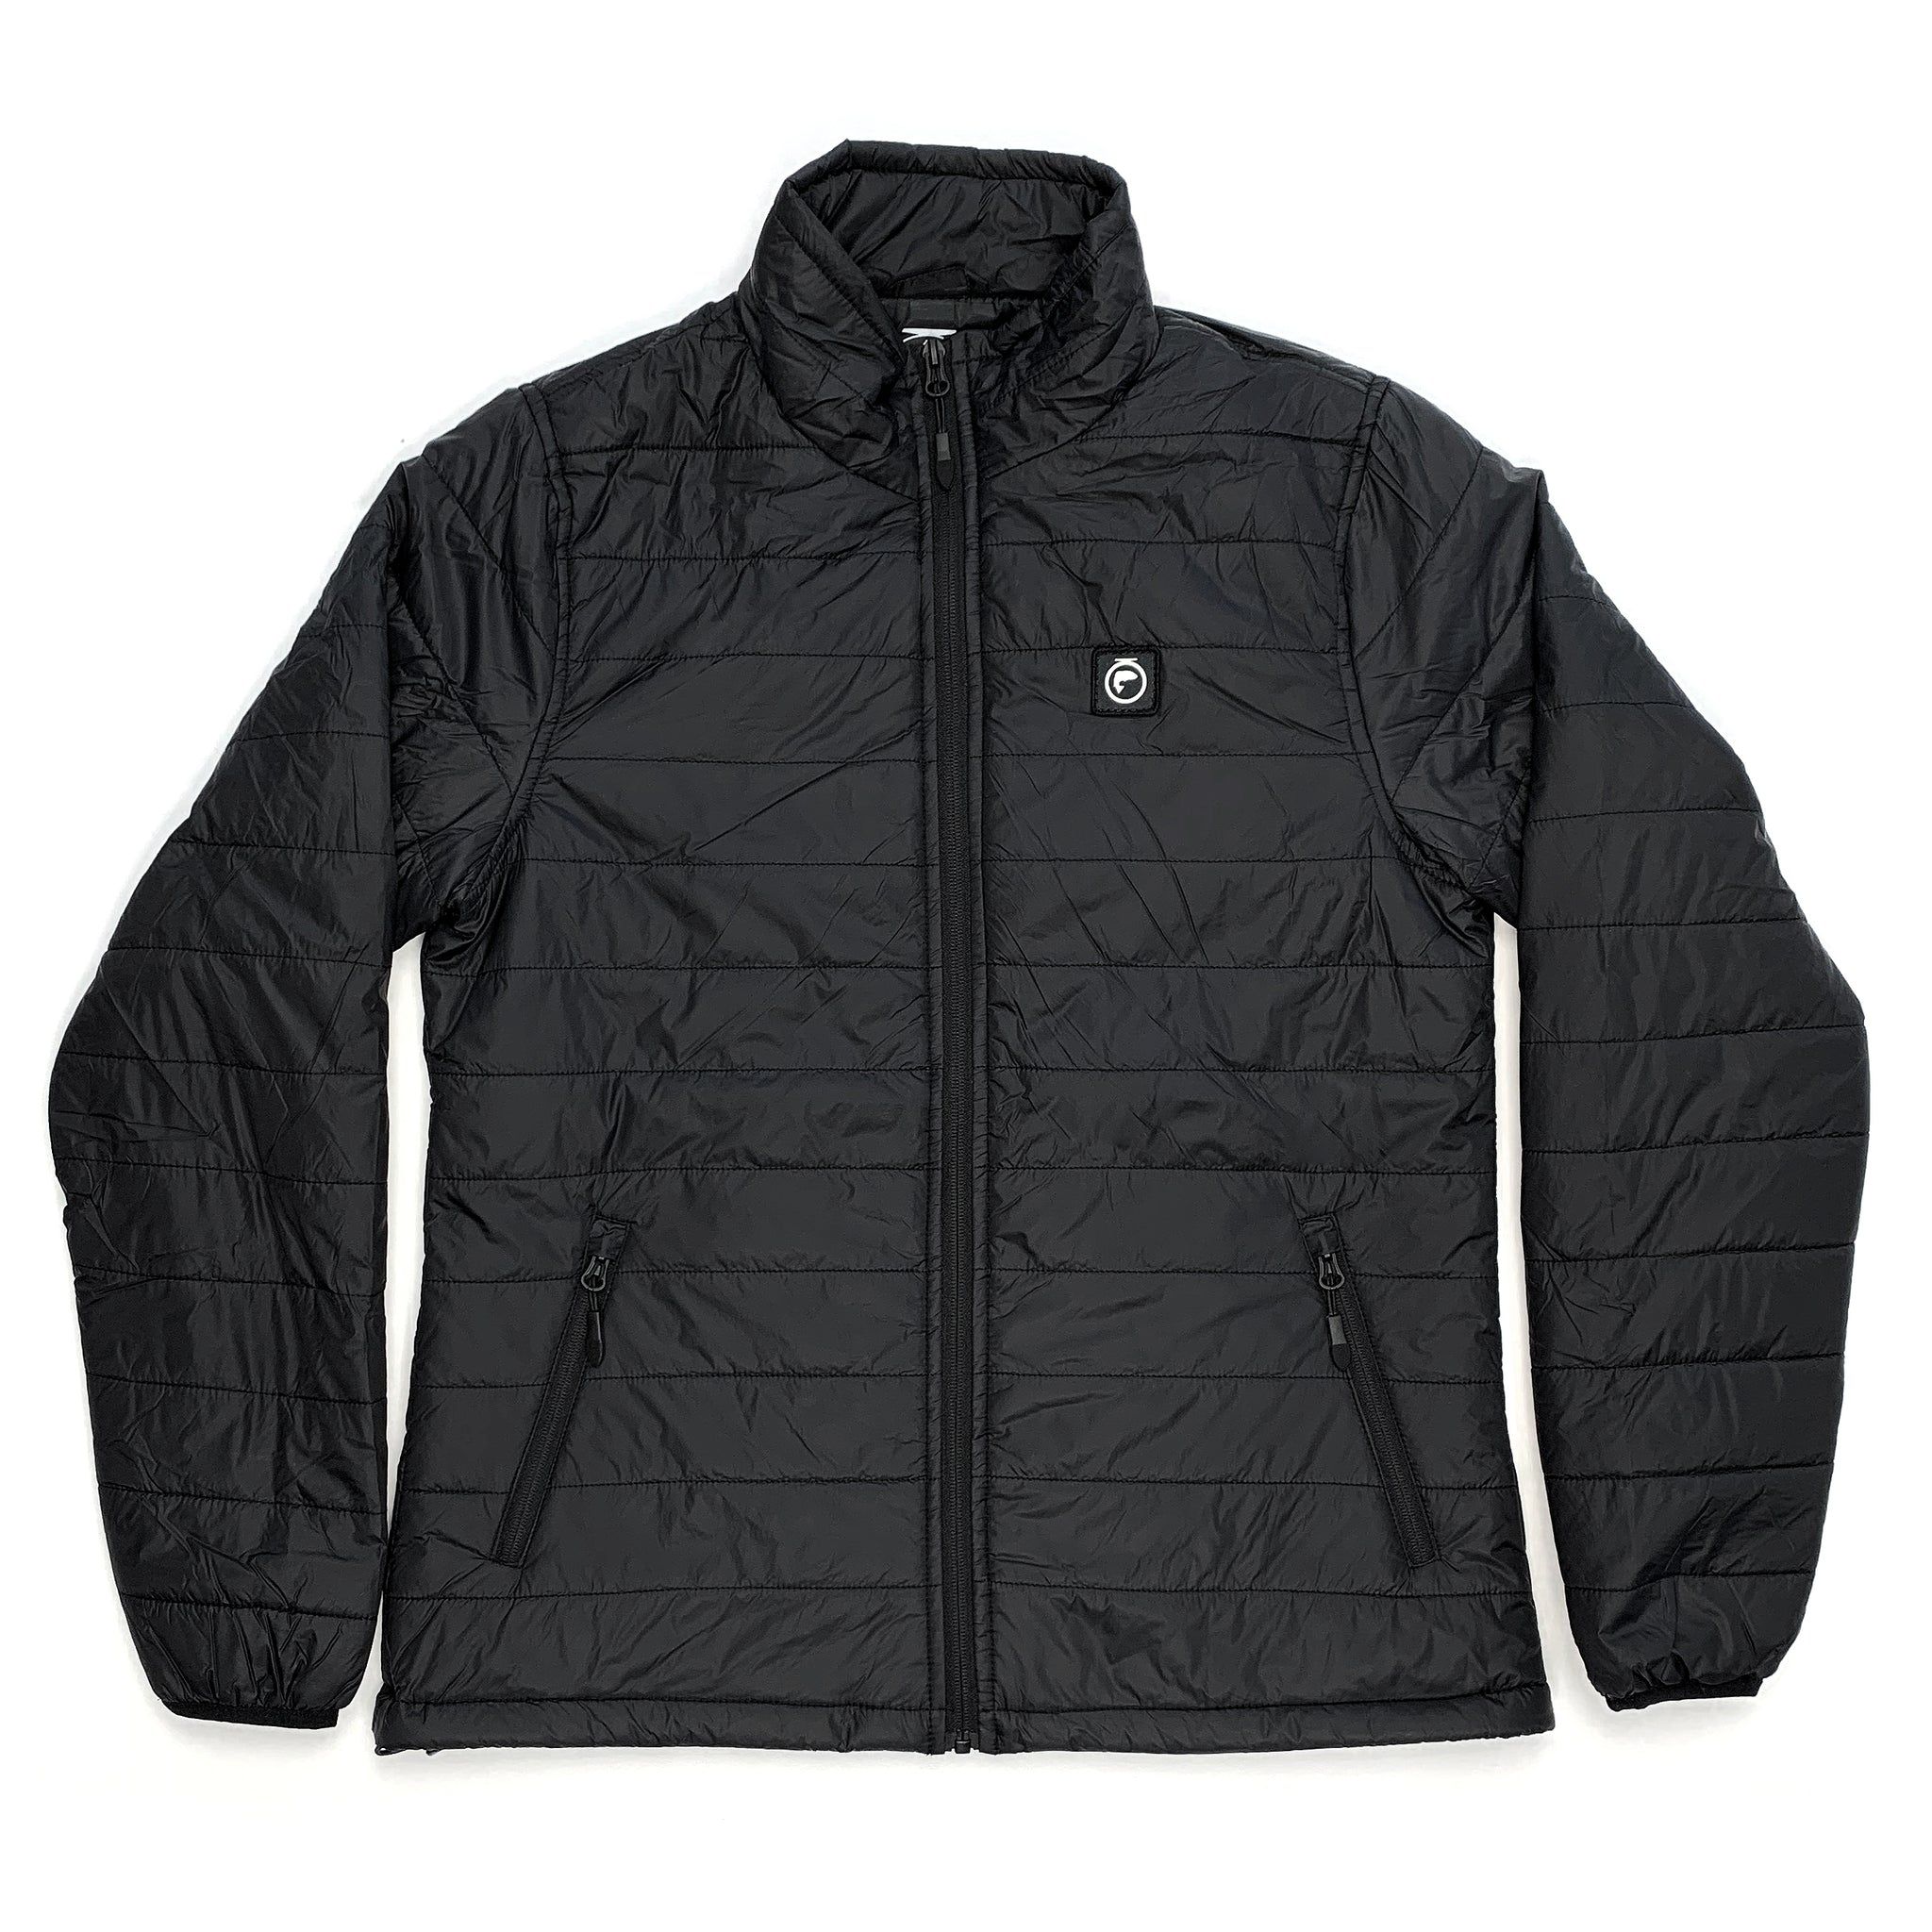 Sierra Puffer Jacket - Ladies